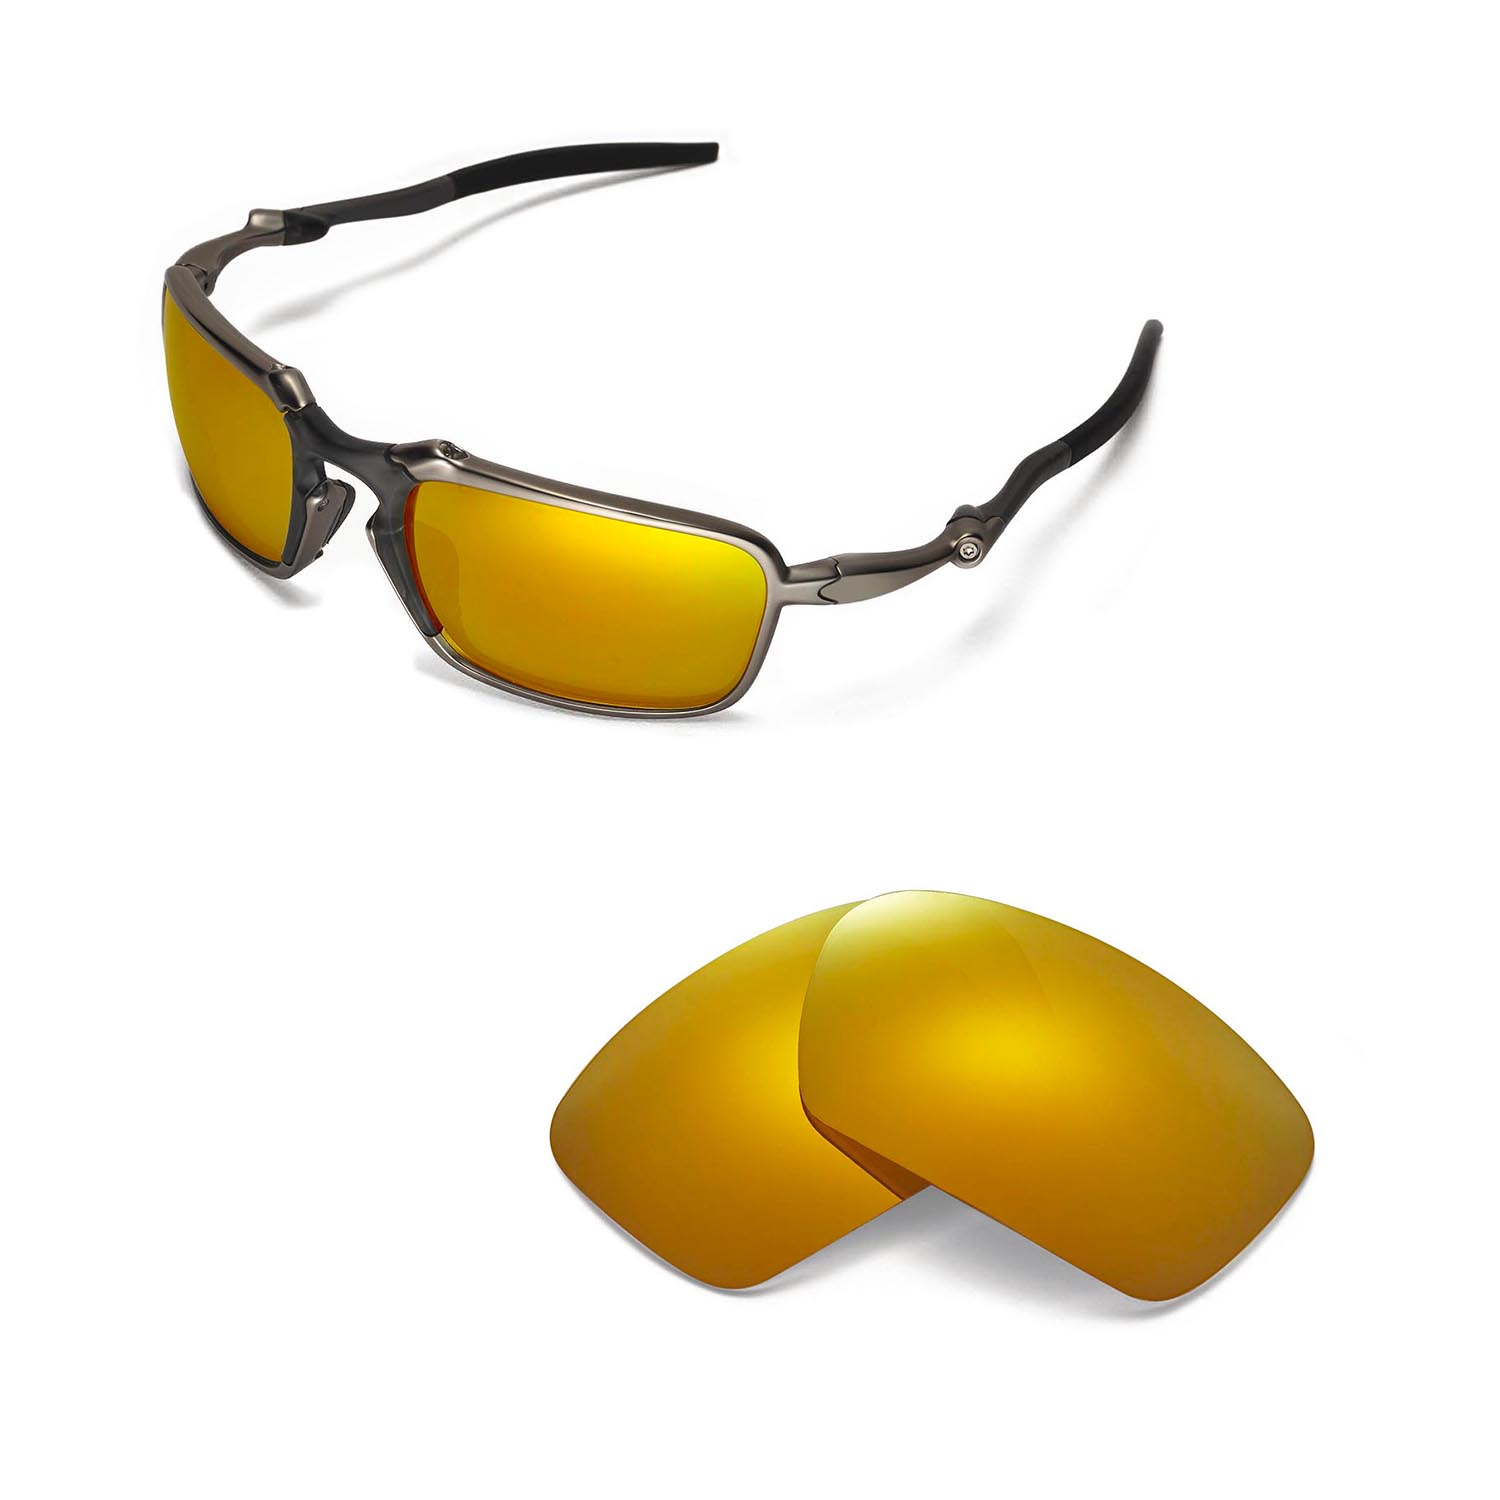 Details about New Walleva Polarized 24K Gold Replacement Lenses For Oakley  Badman Sunglasses 37e4919b0016